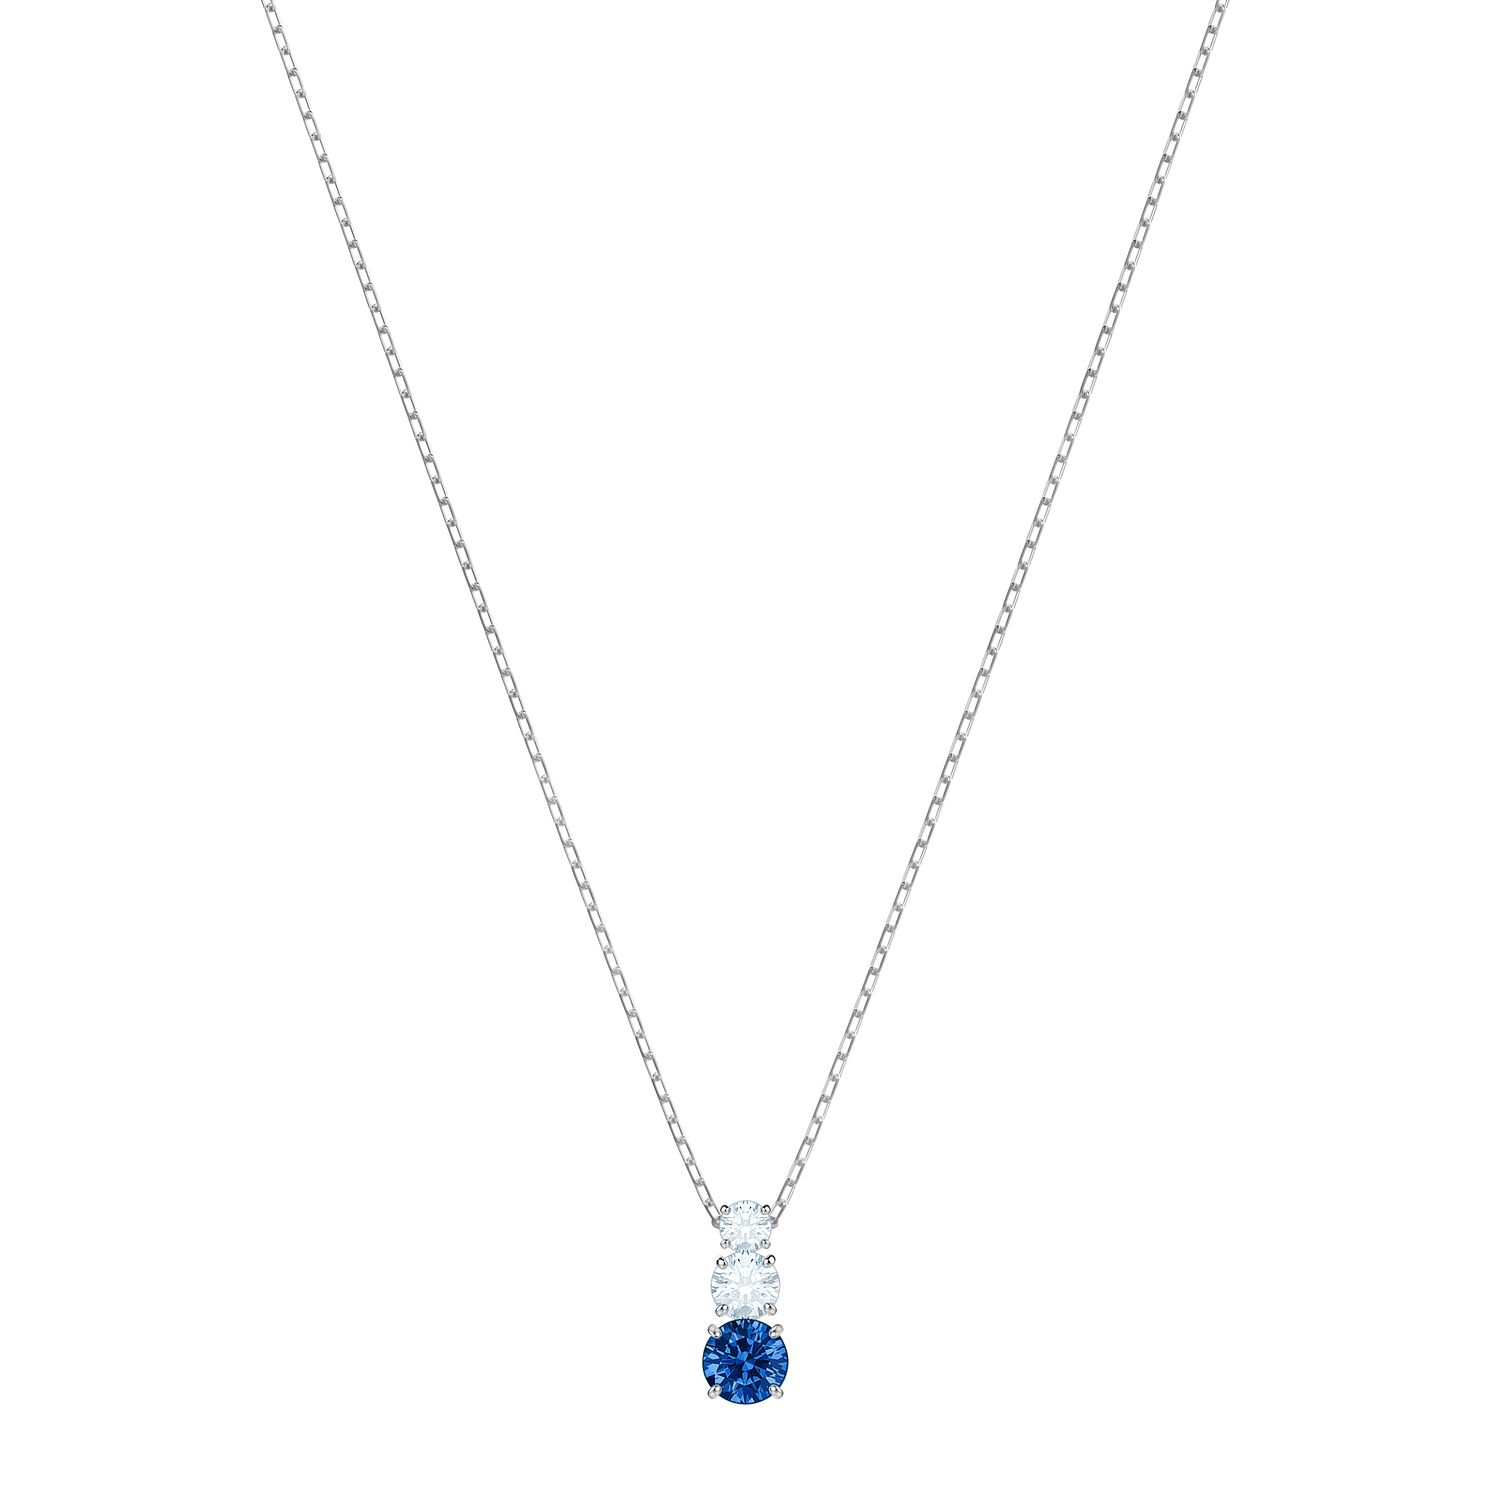 Swarvoski Ladies' Attract Triology Blue Pendant - Product number 9662243